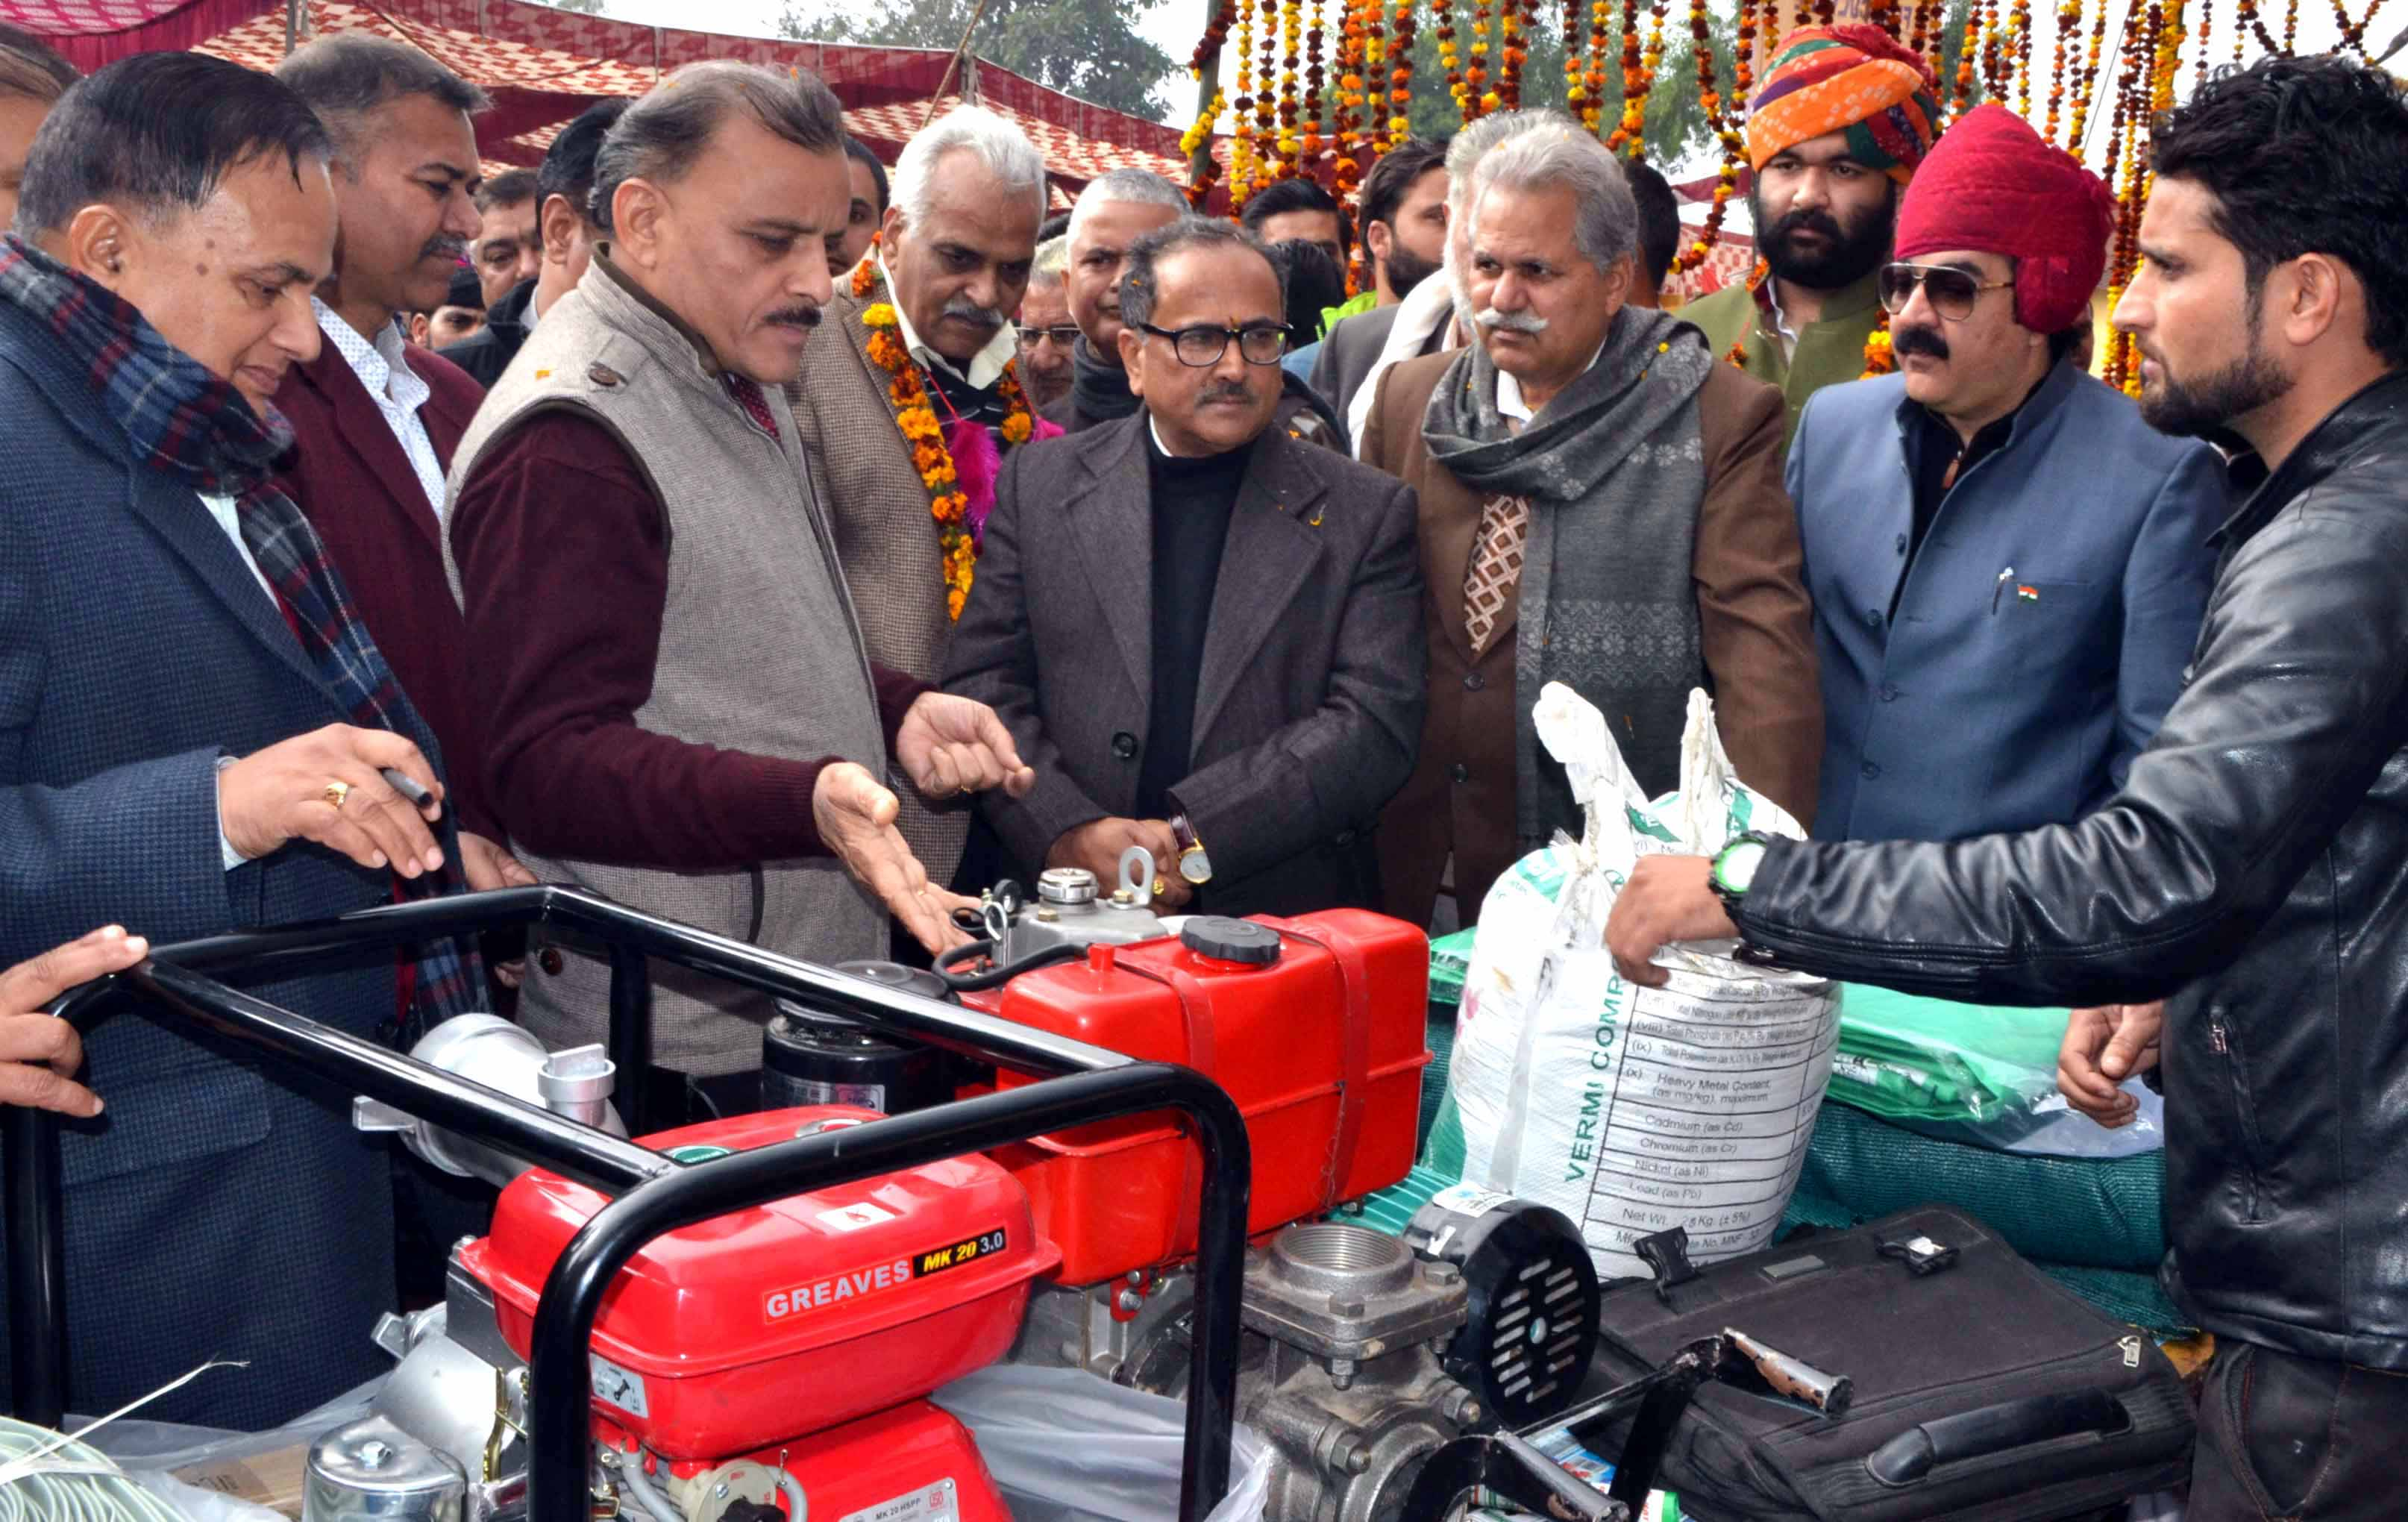 Deputy Chief Minister Dr Nirmal Singh inspecting a stall at Kisan Mela on Tuesday.